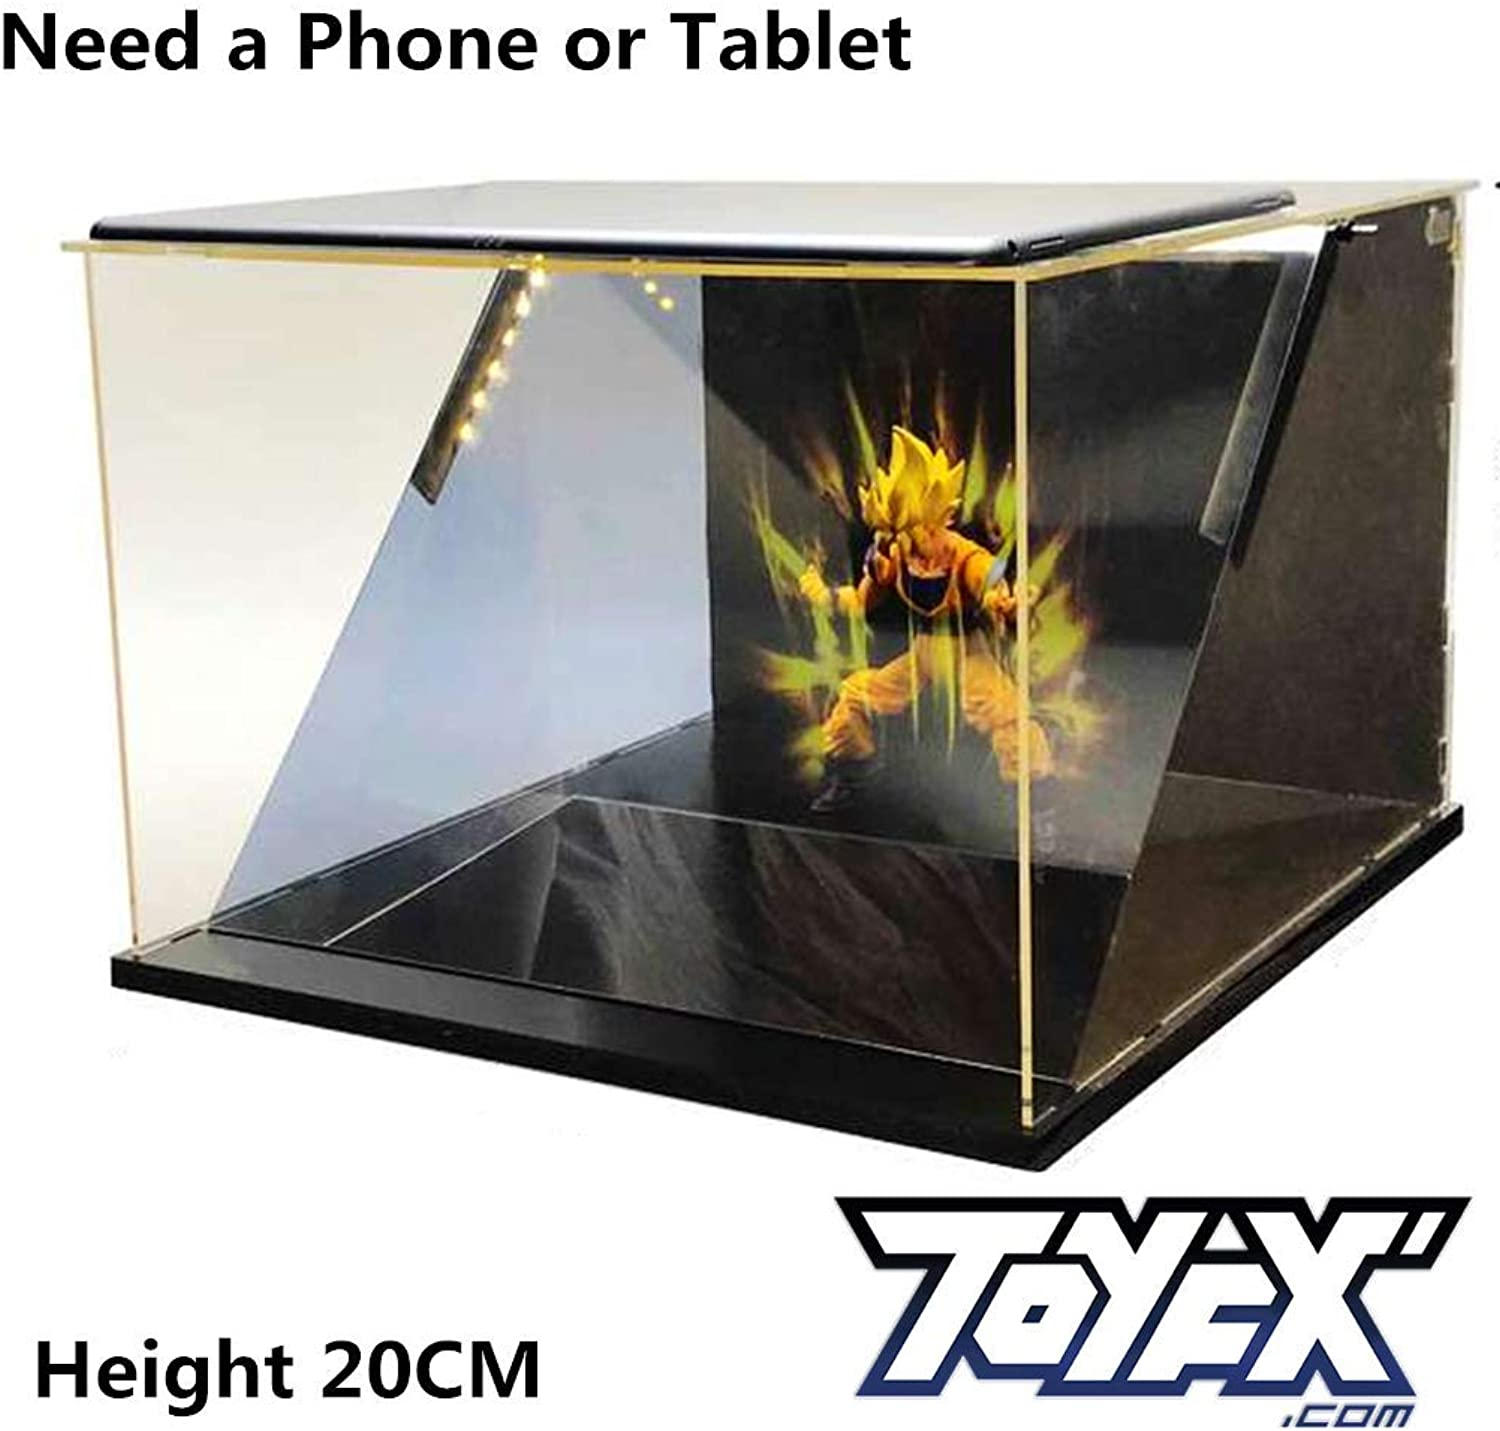 Biaobiaoc   ToyFX 5D Anime Display Case Super Film Special Effects Box Action Figure Model Toy, durchsichtig, Standard